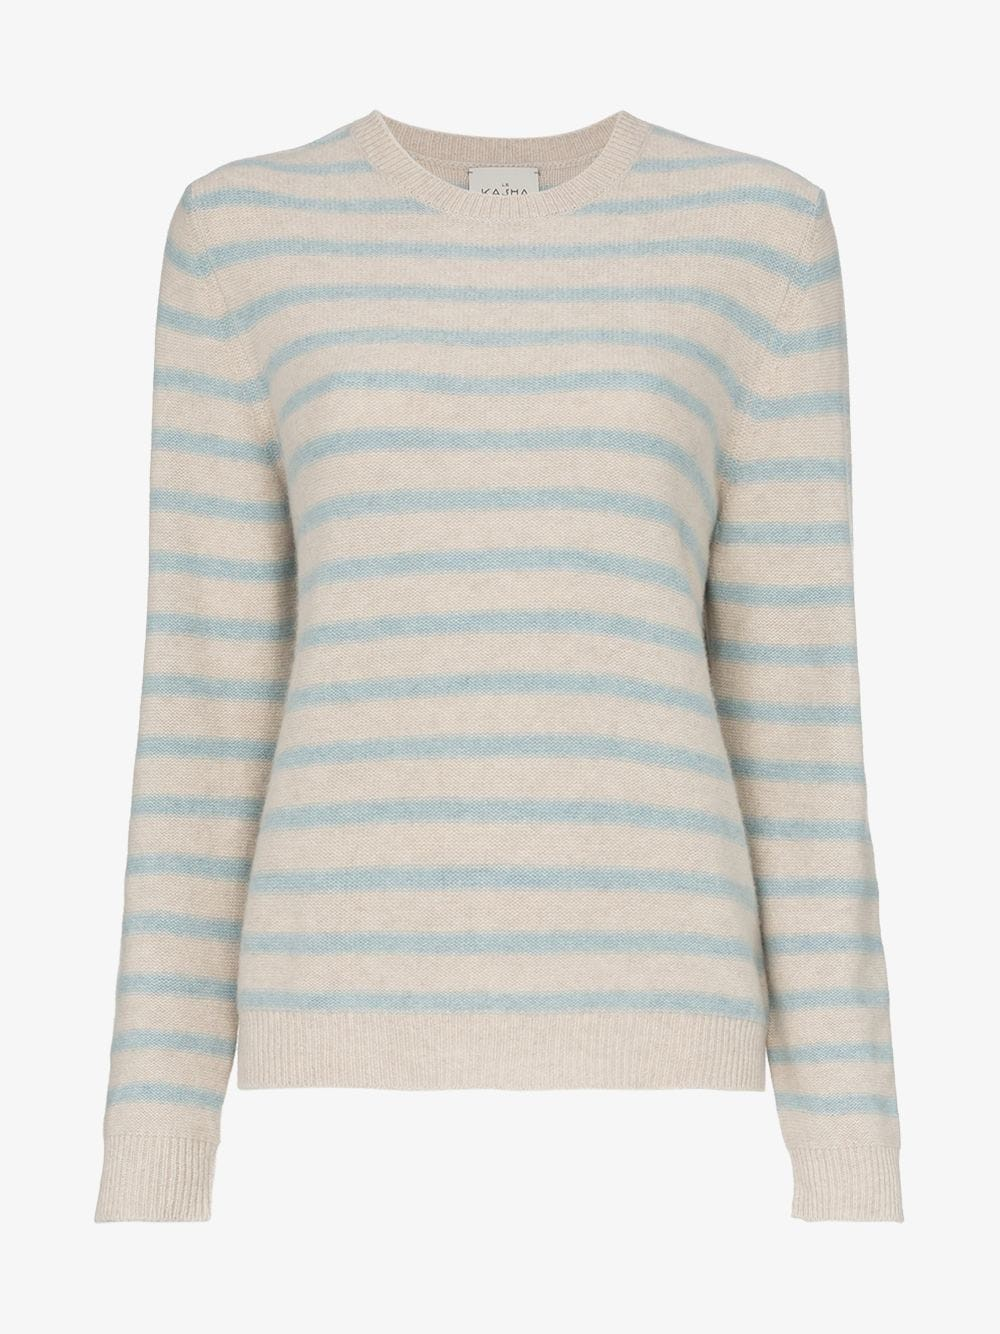 Le Kasha Touques ribbed cashmere jumper in blue / beige